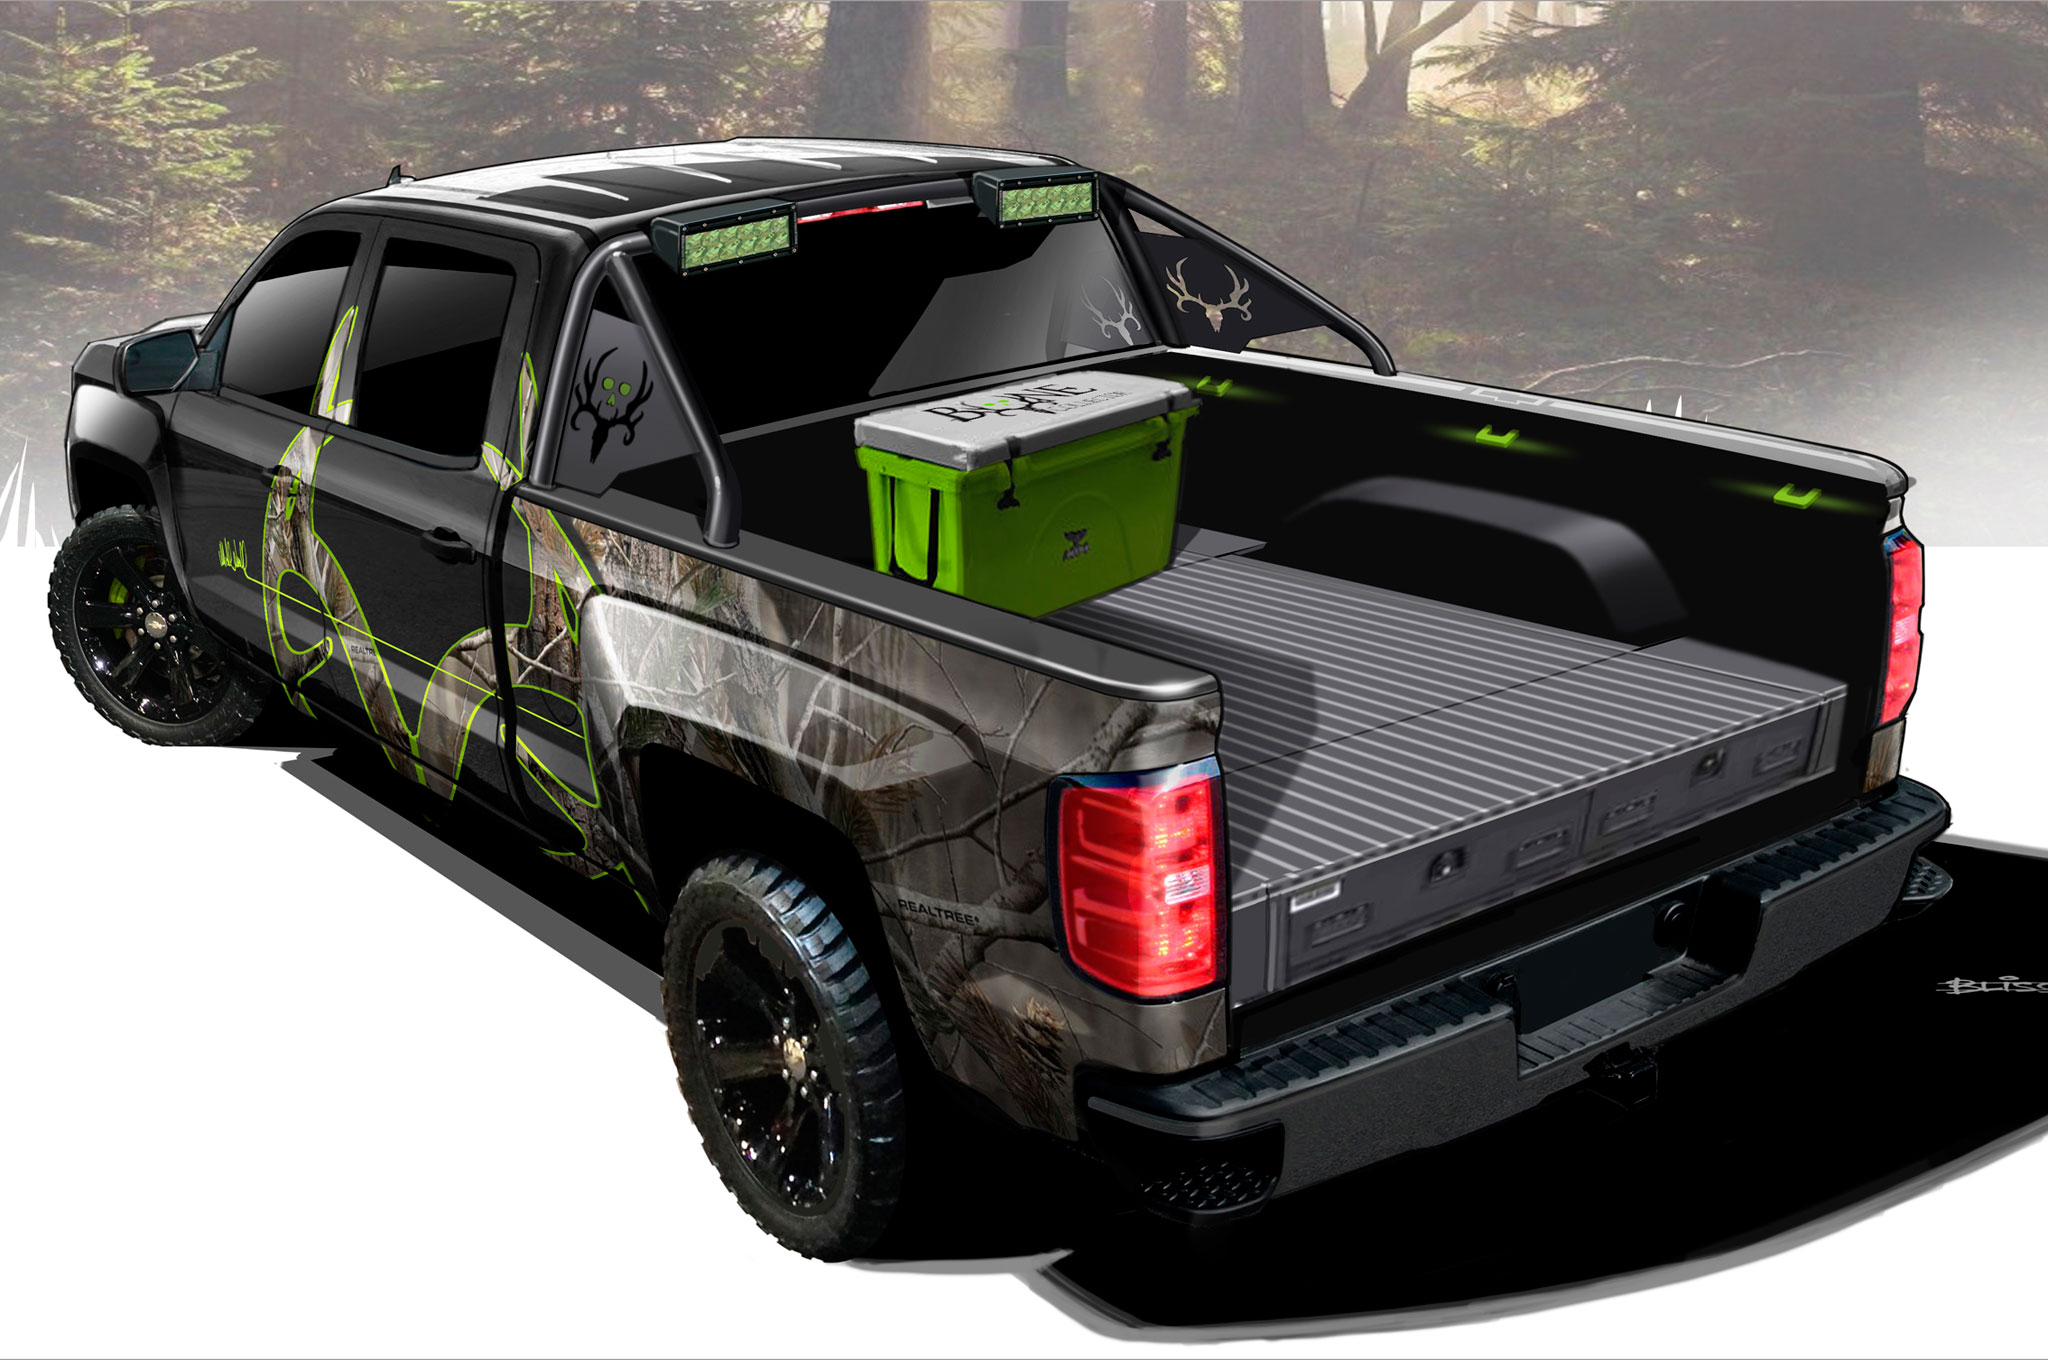 Silverado Realtree Edition >> 2016 Chevrolet Silverado Adds Hunting Inspired Realtree Edition